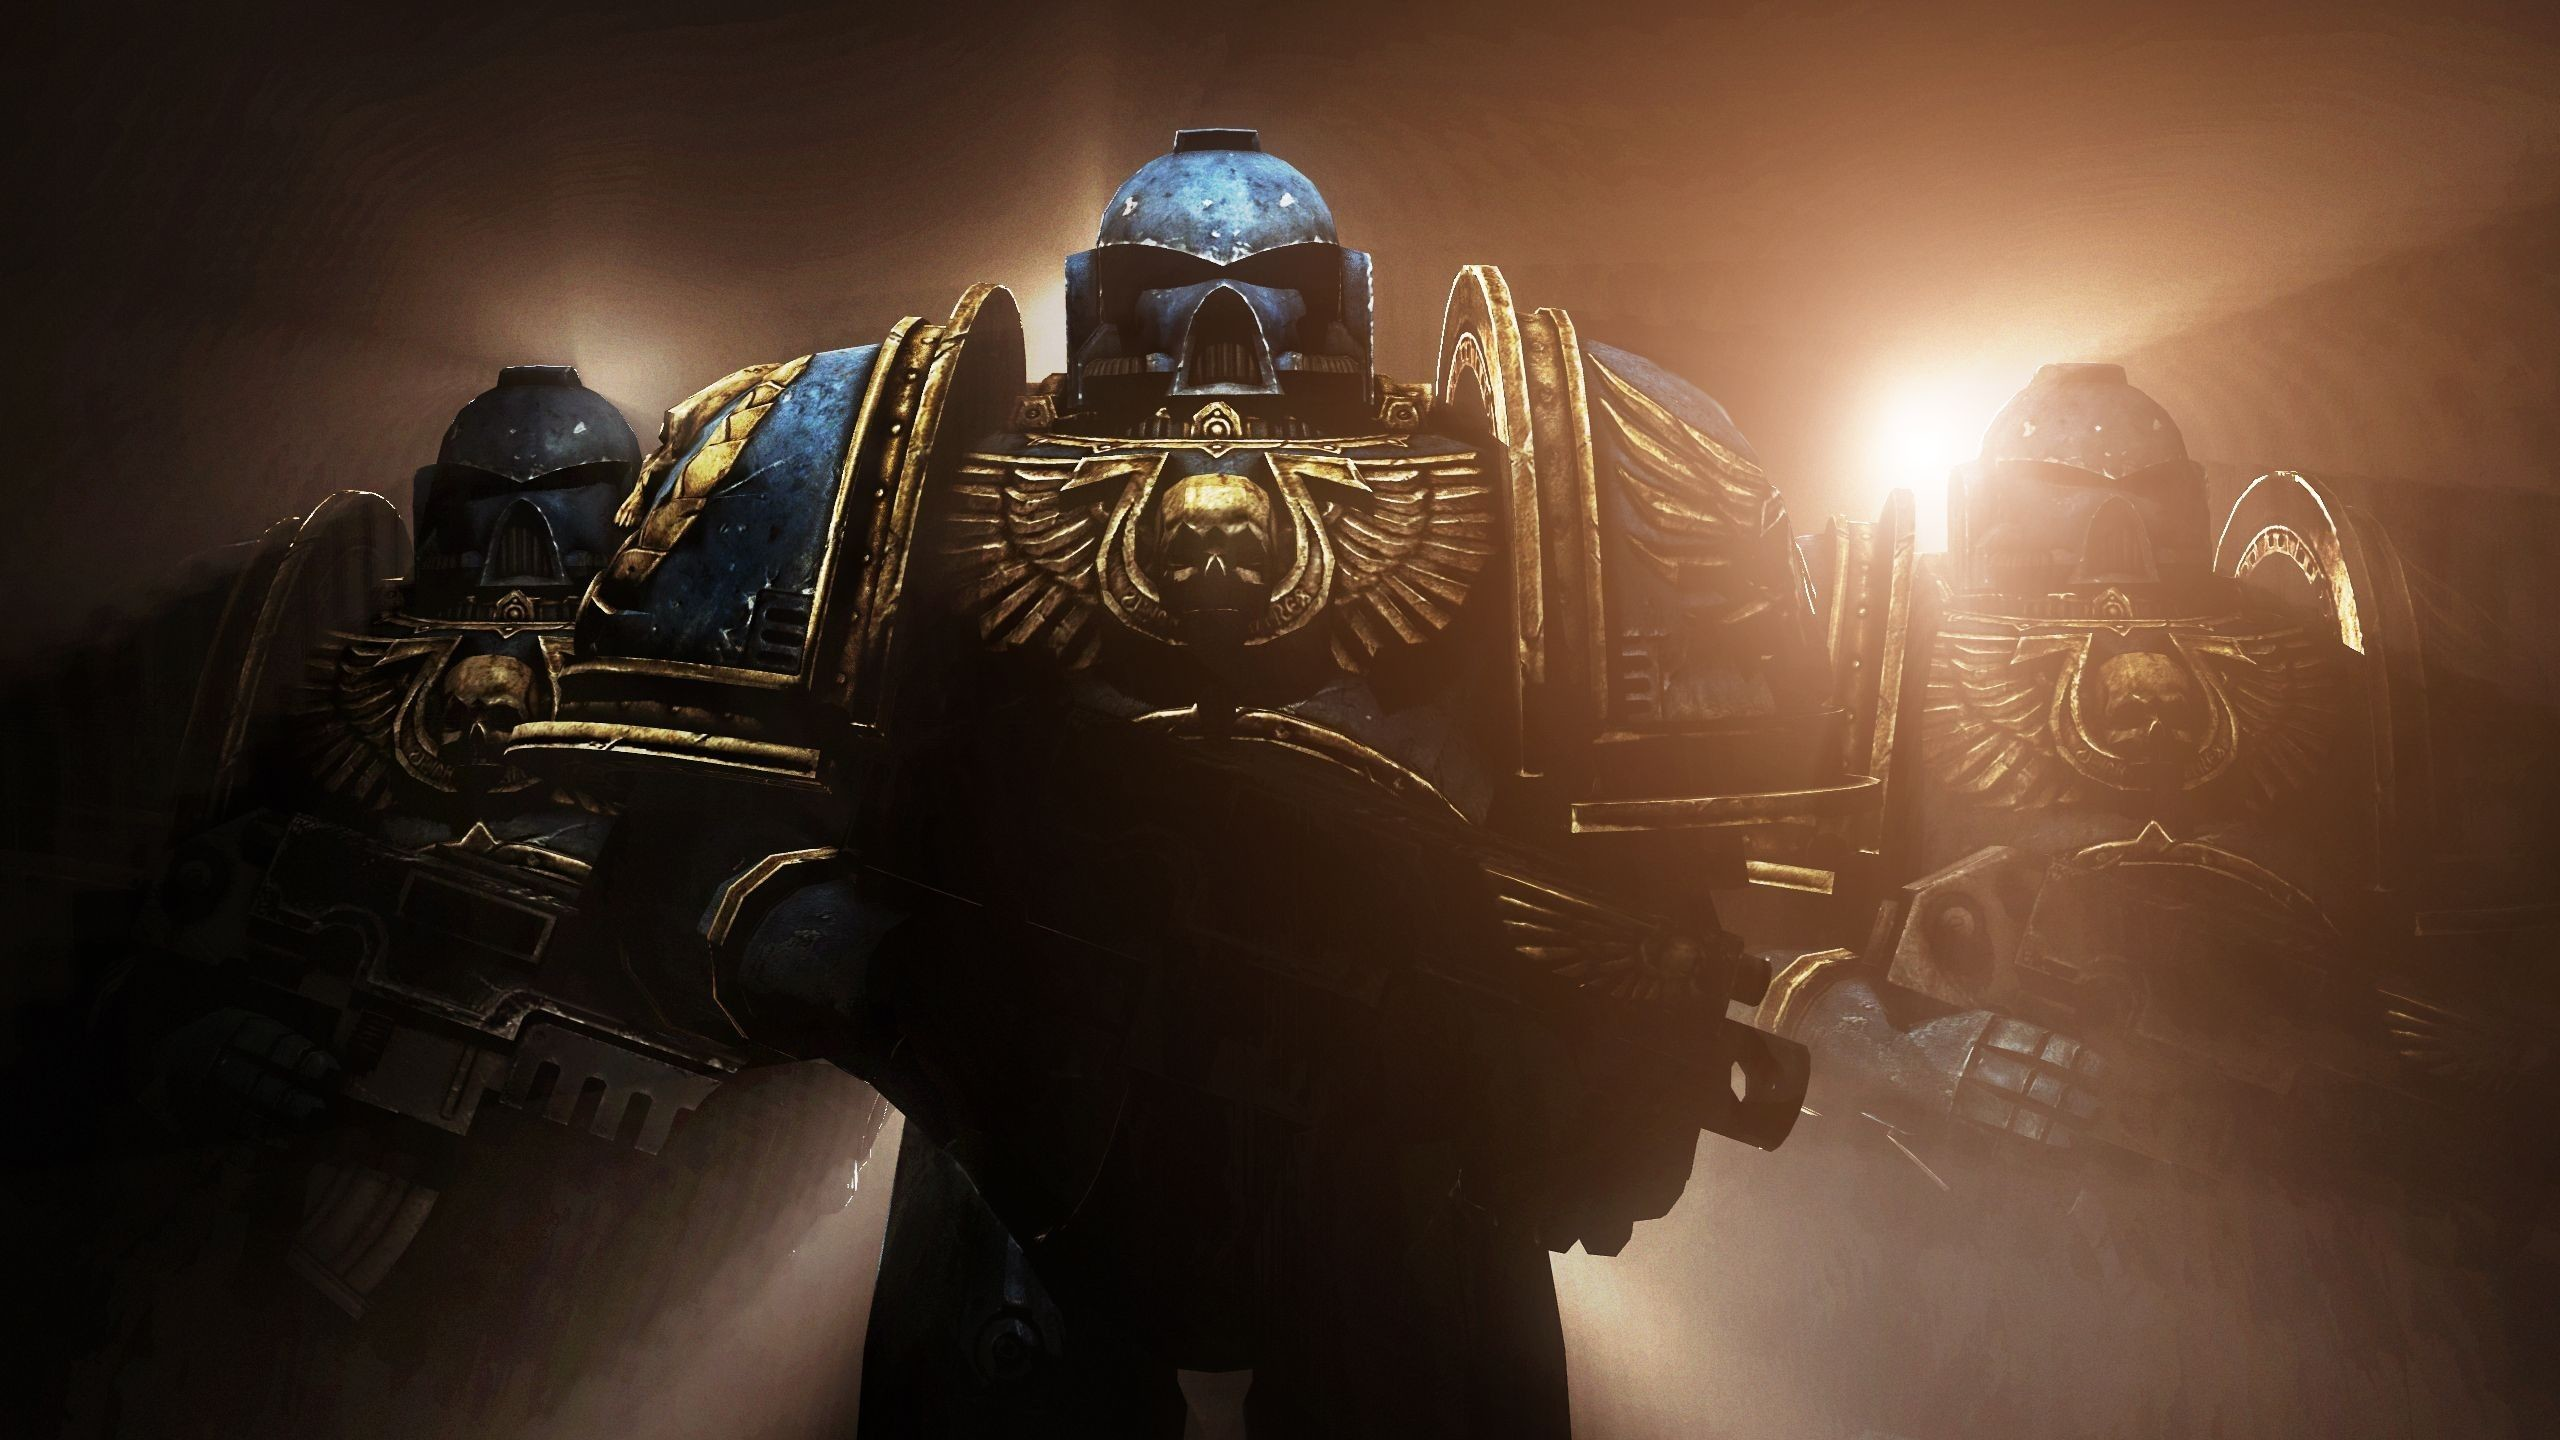 Res: 2560x1440, Space Marines Wallpaper Space marine illustration